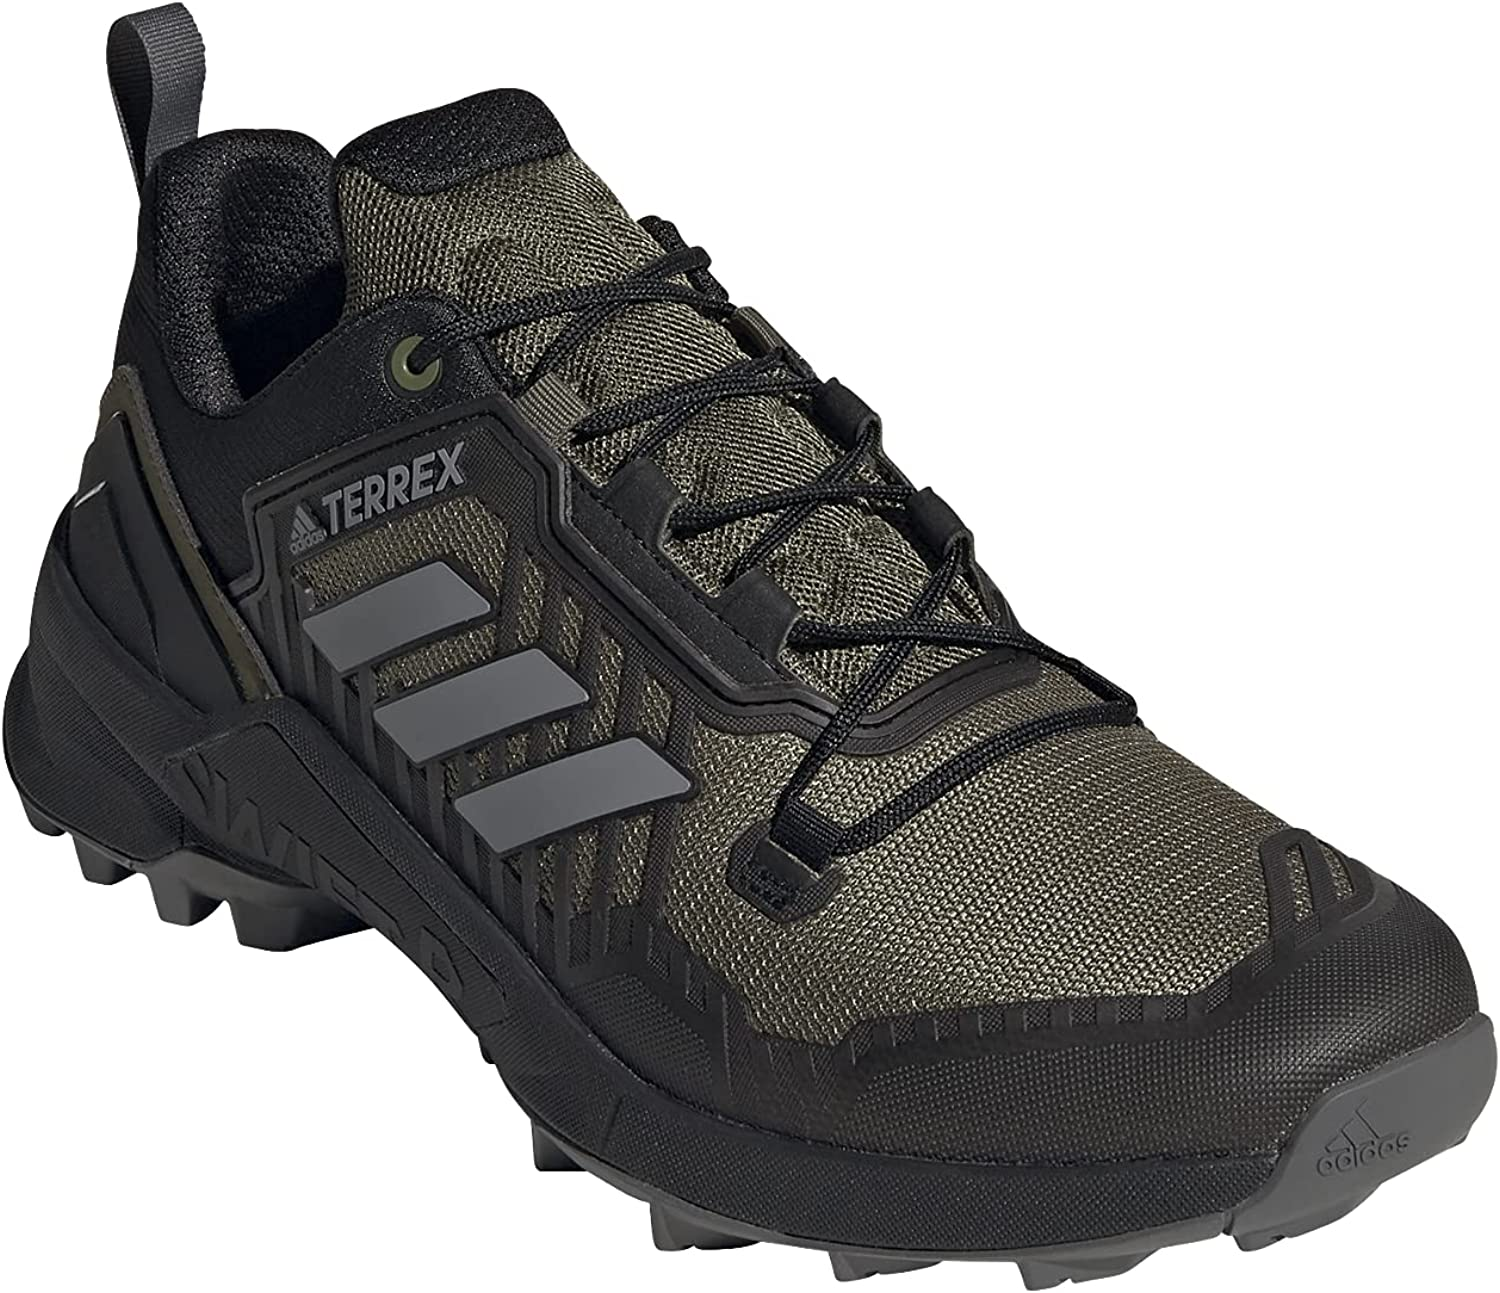 Max 50% OFF National products adidas Men's Terrex Swift Hiking Shoe R3